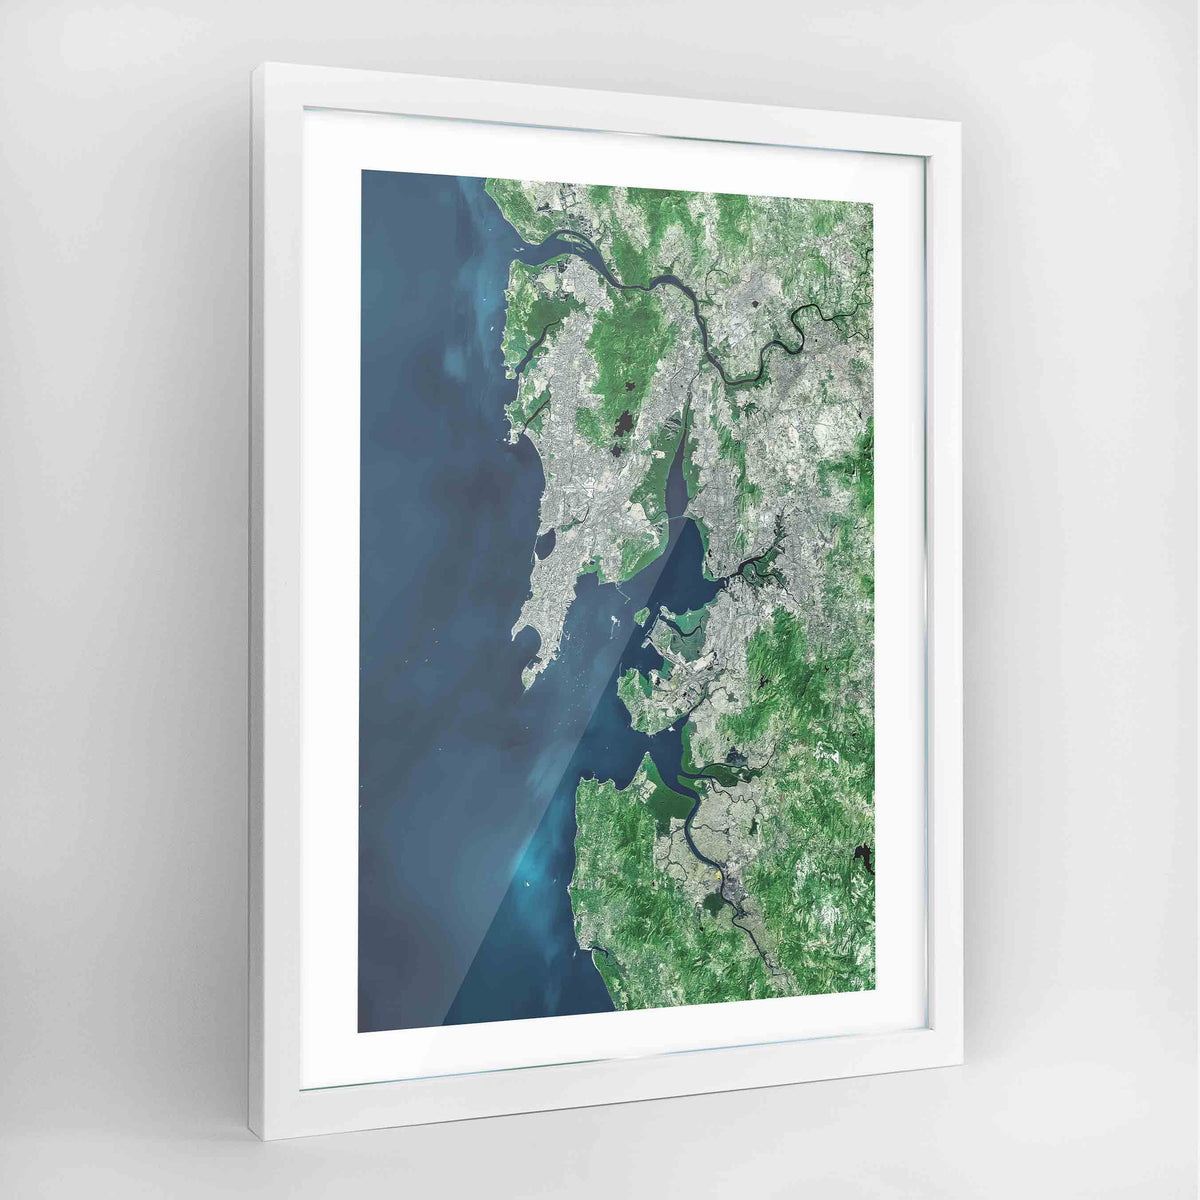 Mumbai Earth Photography Art Print - Framed